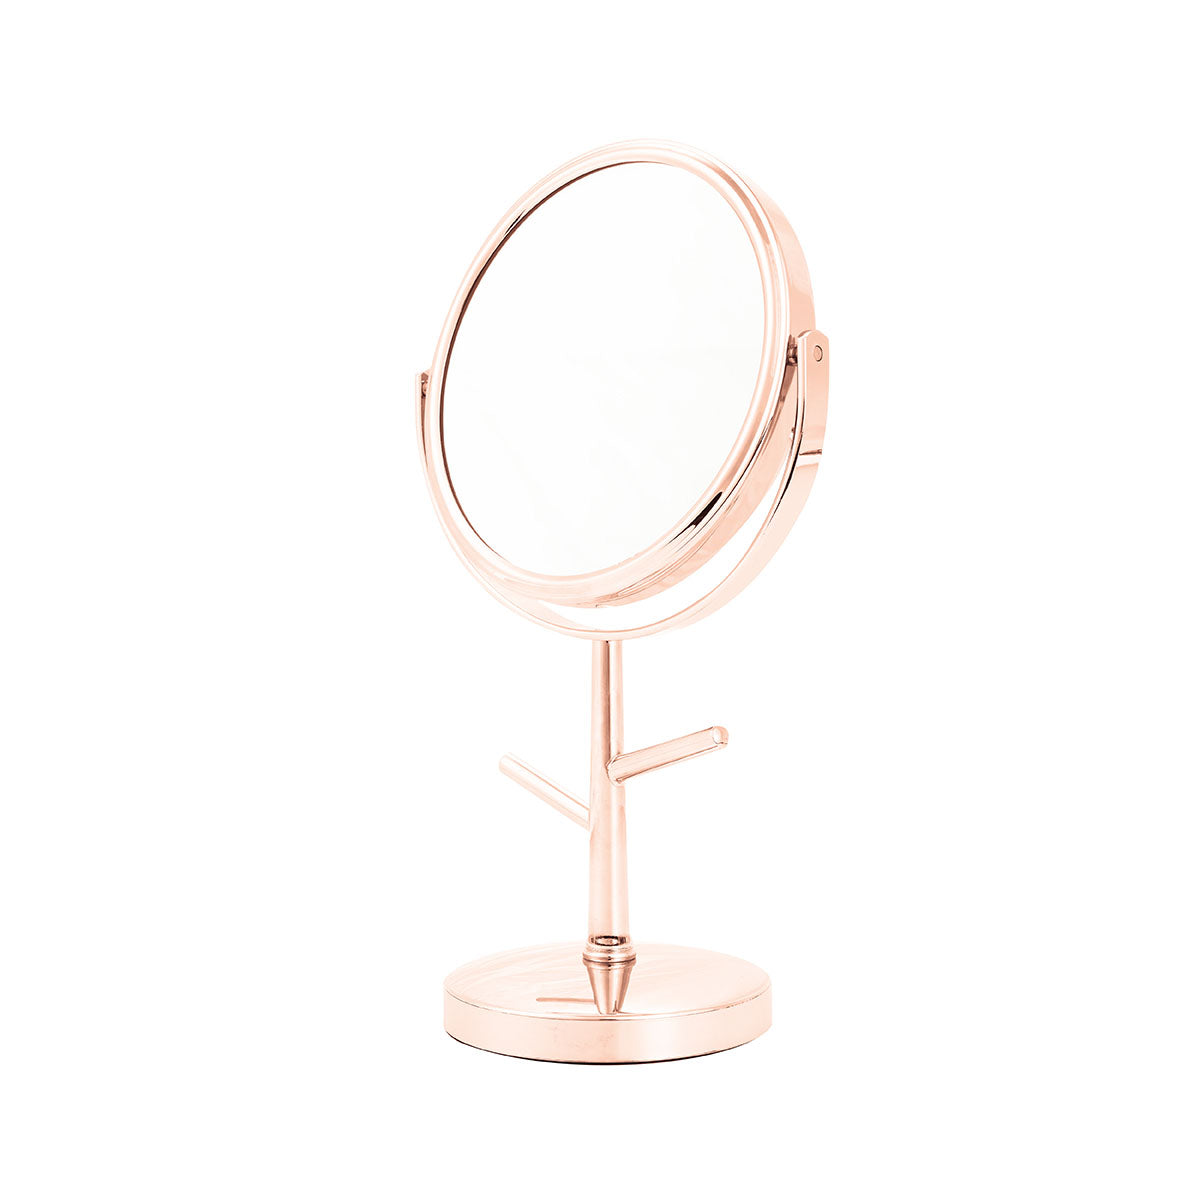 MIDI MIRROR RING HOLDER ROSE GOLD - DANIELLE CREATIONS